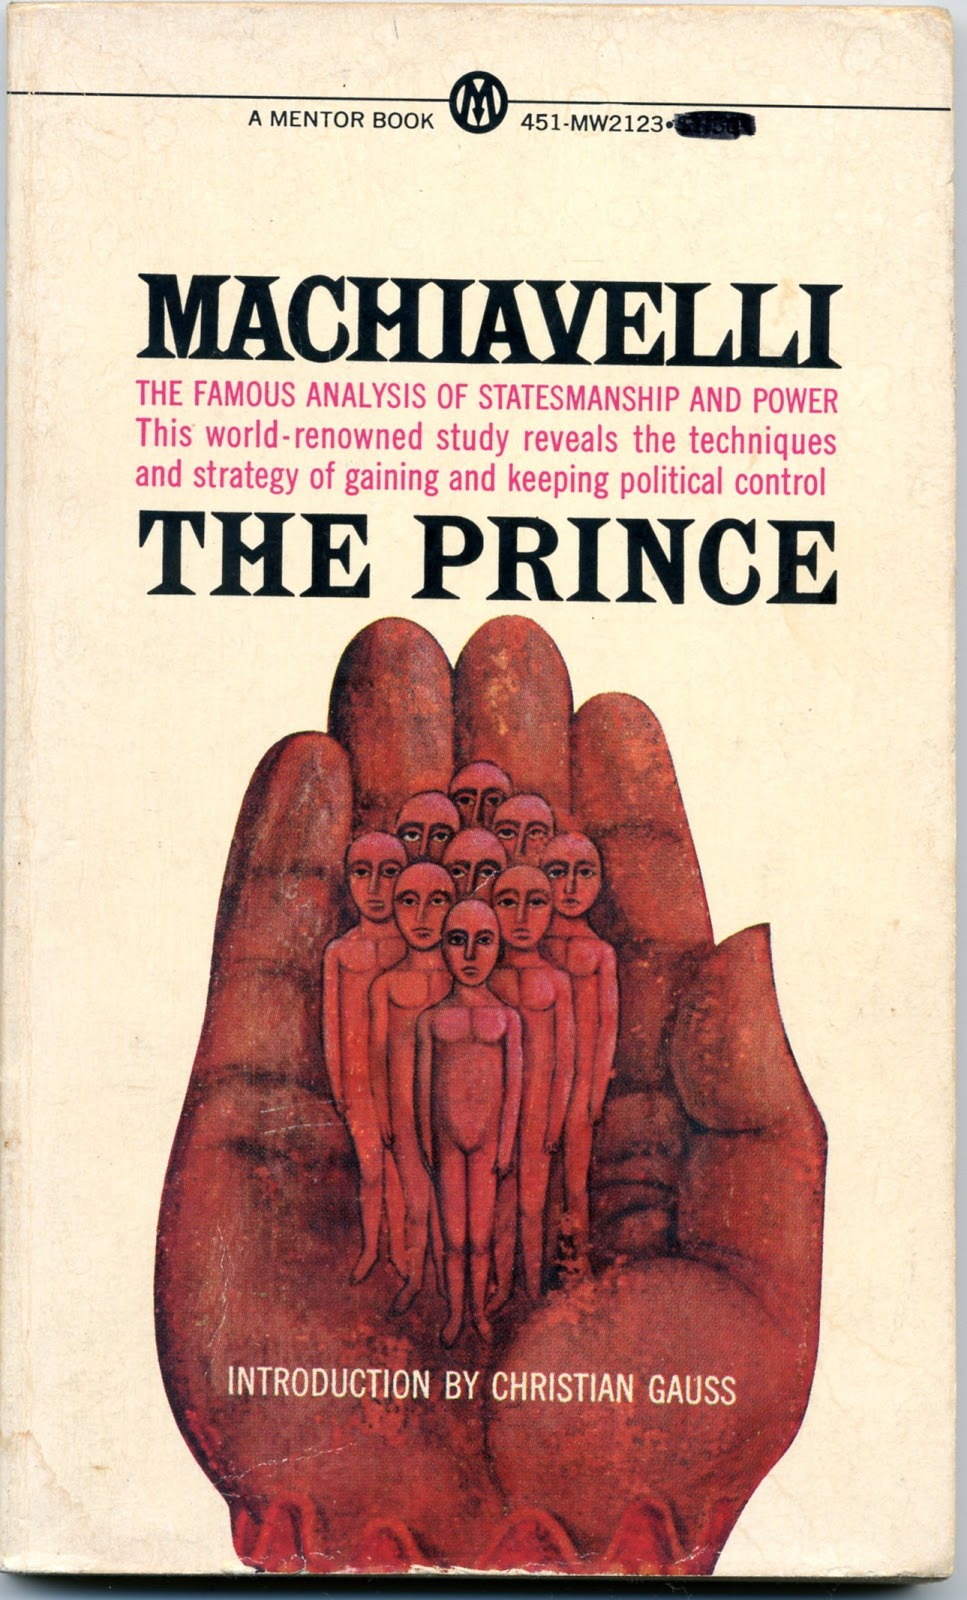 a literary analysis of the qualities of the prince by niccolo machiavelli Niccolò machiavelli was one of the most influential political theorists of western philosophy we have all reasons to believe that his education was of exceptional quality, especially in grammar despite the popularity of the prince, machiavelli's major political work is probably the discourses.